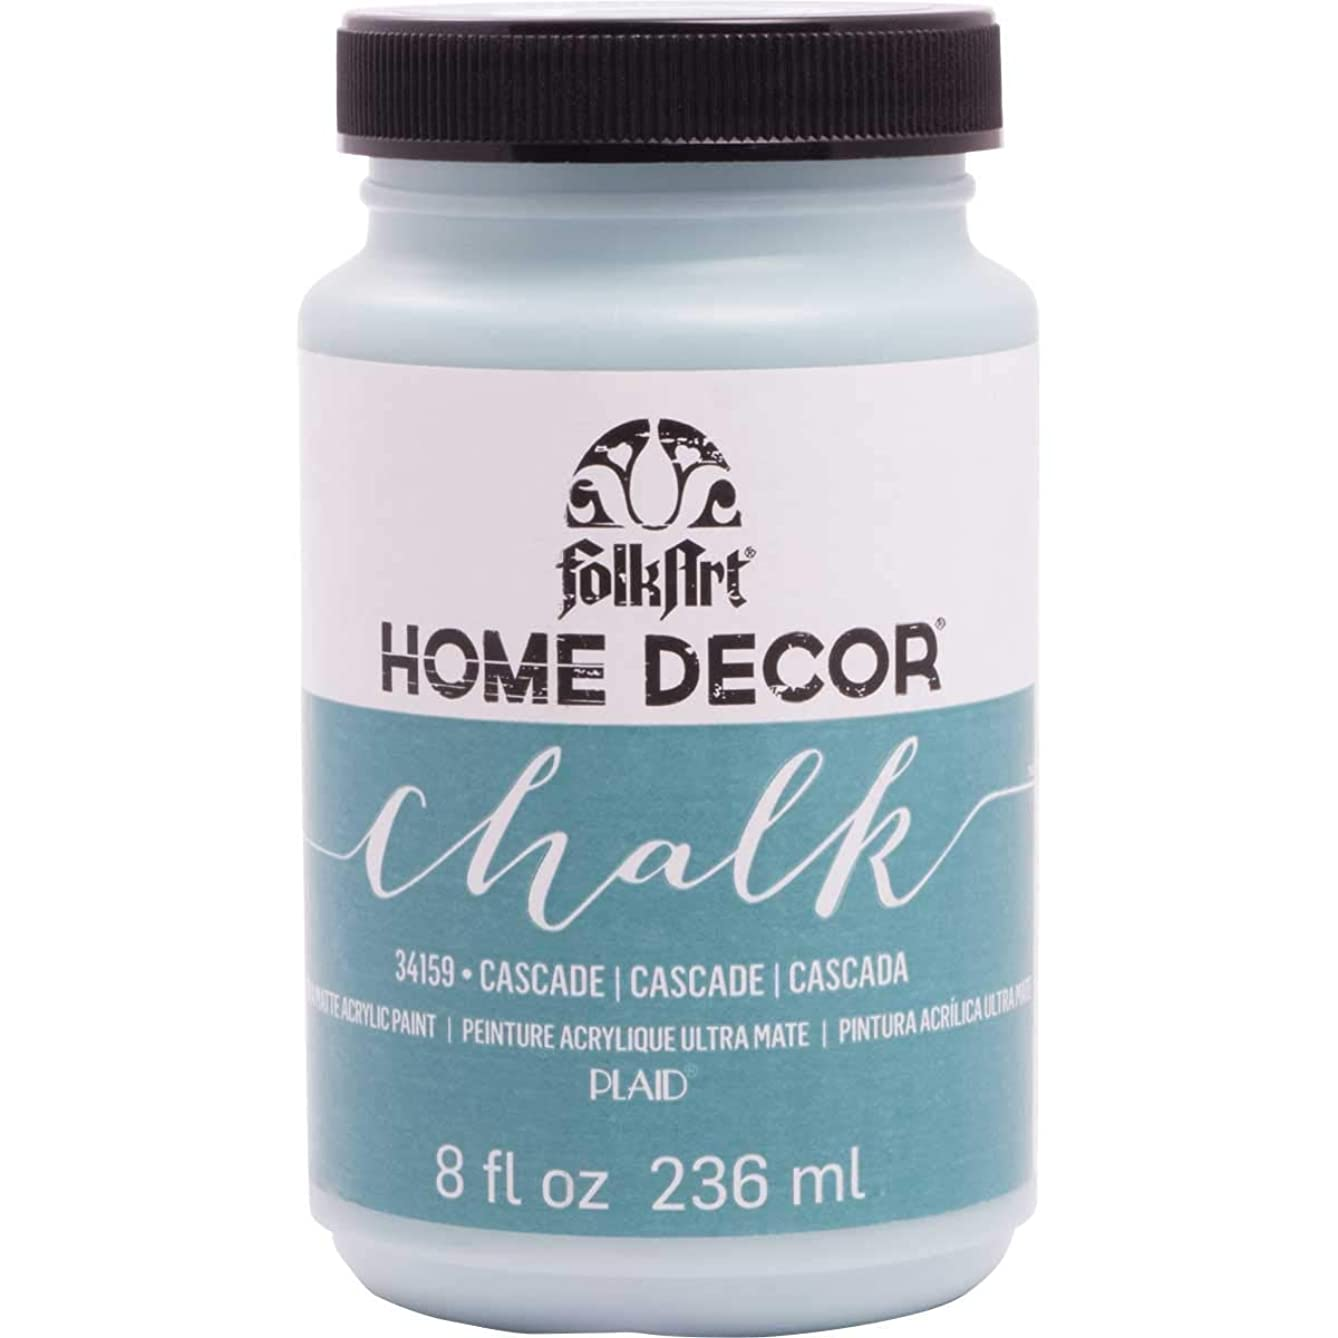 FolkArt Home Decor Chalk Furniture & Craft Paint in Assorted Colors (8 Ounce), 34159 Cascade